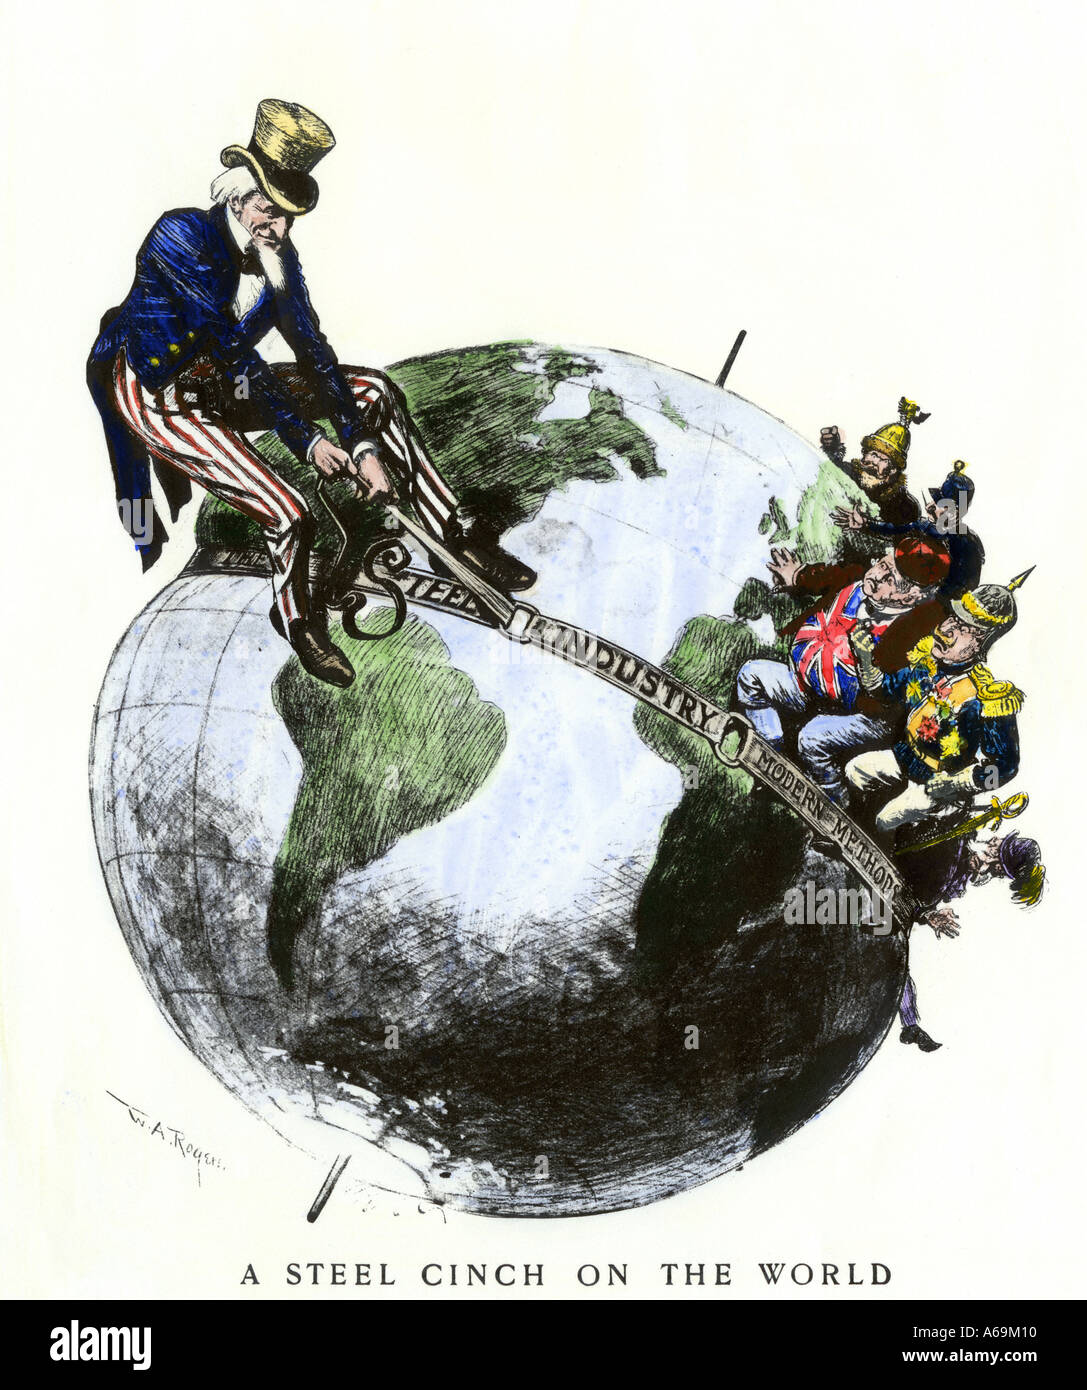 Uncle Sam applying a steel cinch on the globe cartoon symbolizing dominance of American steel industry 1901. Hand-colored woodcut - Stock Image